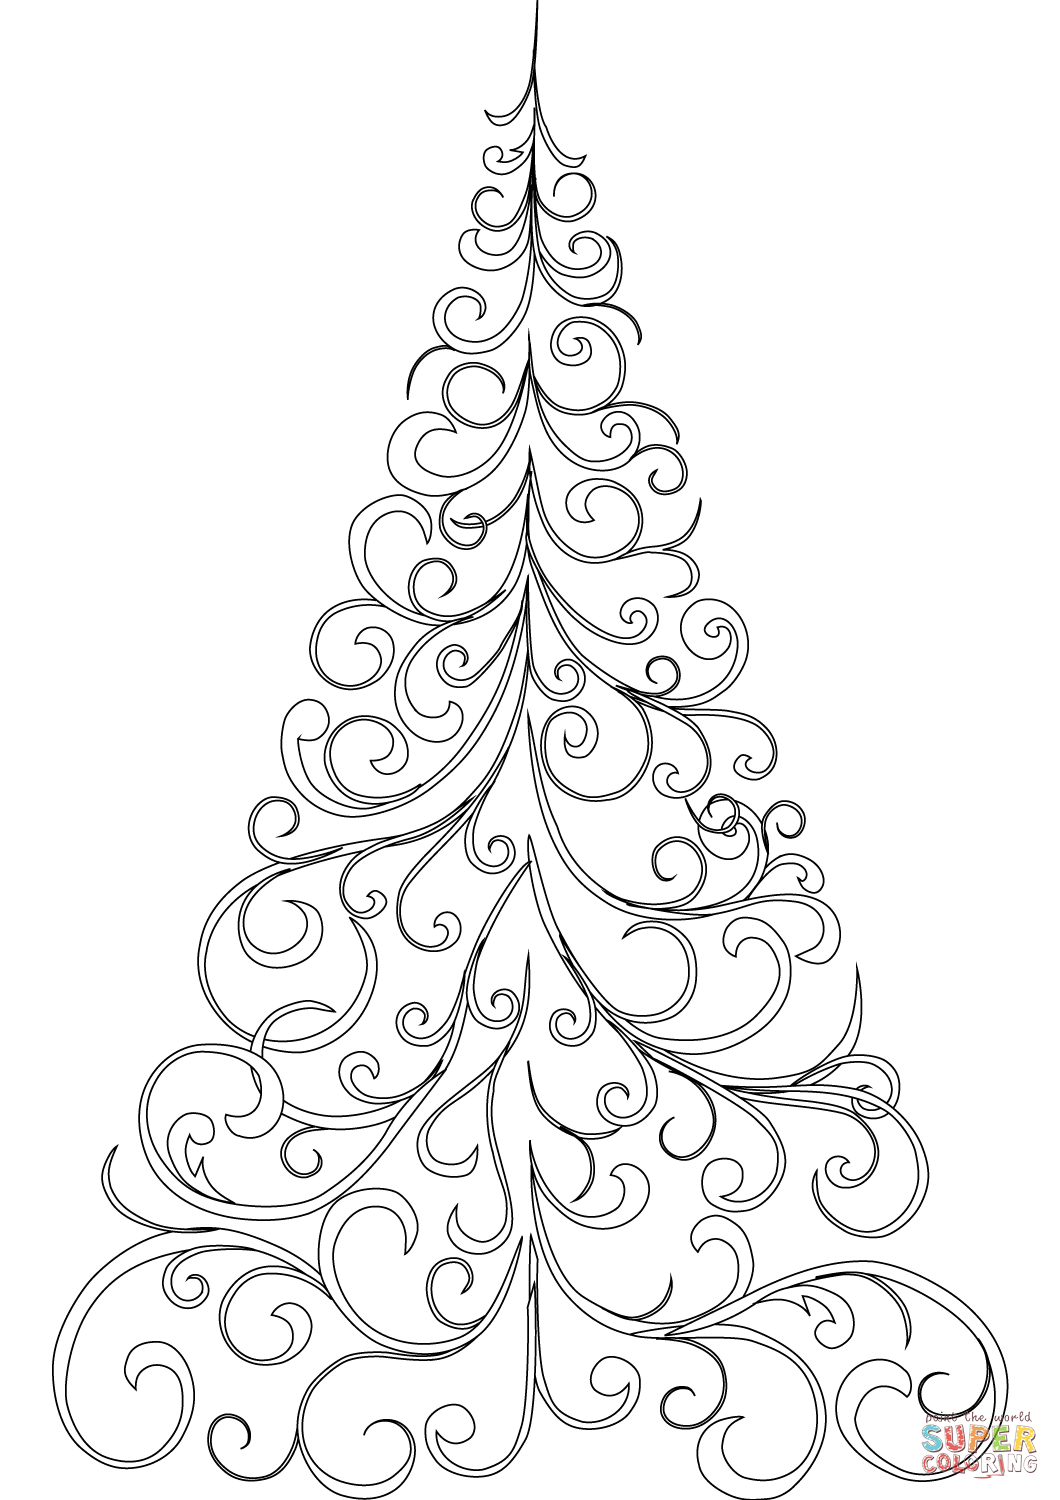 1060x1500 Swirly Christmas Tree Coloring Page Free Printable Pages